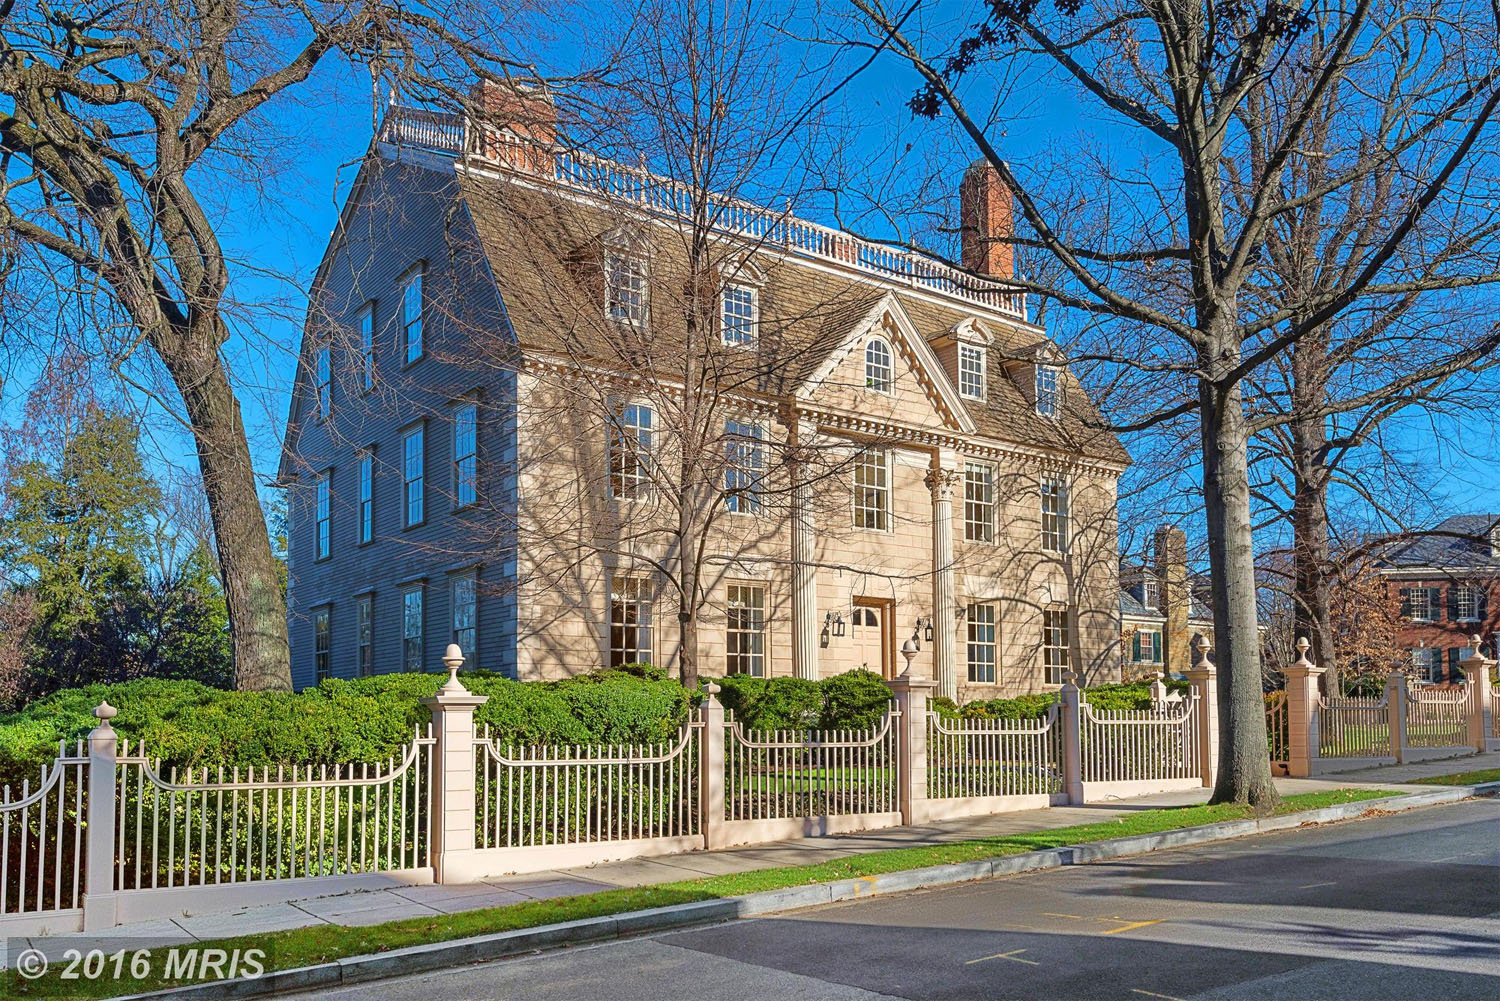 $7,100,000. 2401 Kalorama Road NW Washington, D.C. This colonial mansion in the tony Kalorama neighborhood of Northwest D.C  sold in August for $7.1 million. The mansion, originally built in 1754, has six bedrooms and seven bathrooms. (MRIS)